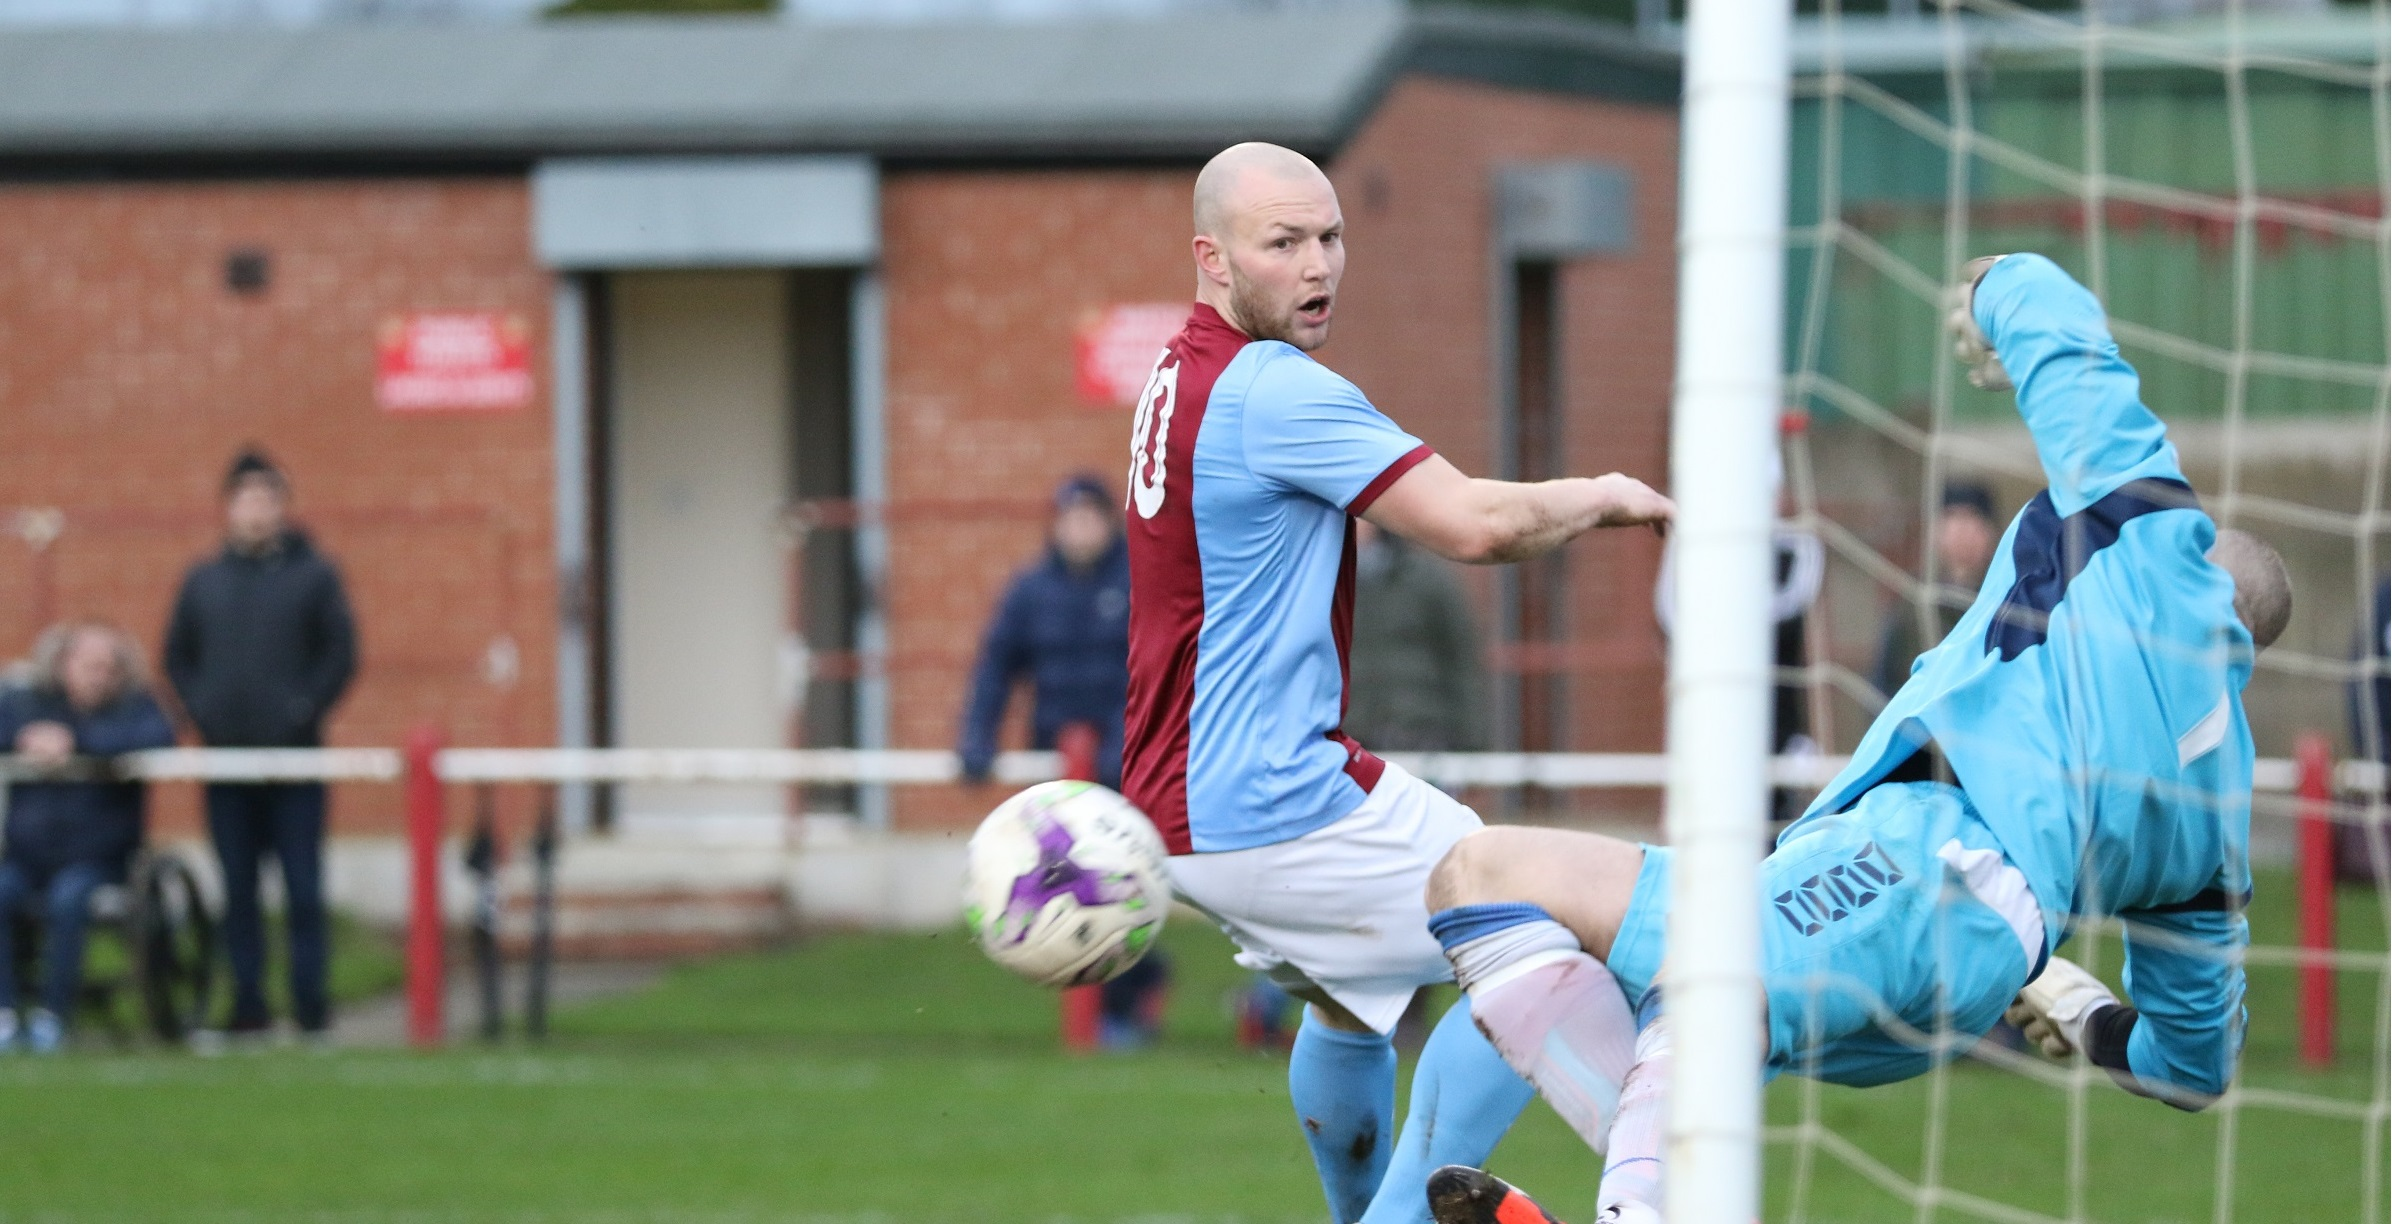 HIGHLIGHTS: Ryhope CW 3-2 South Shields